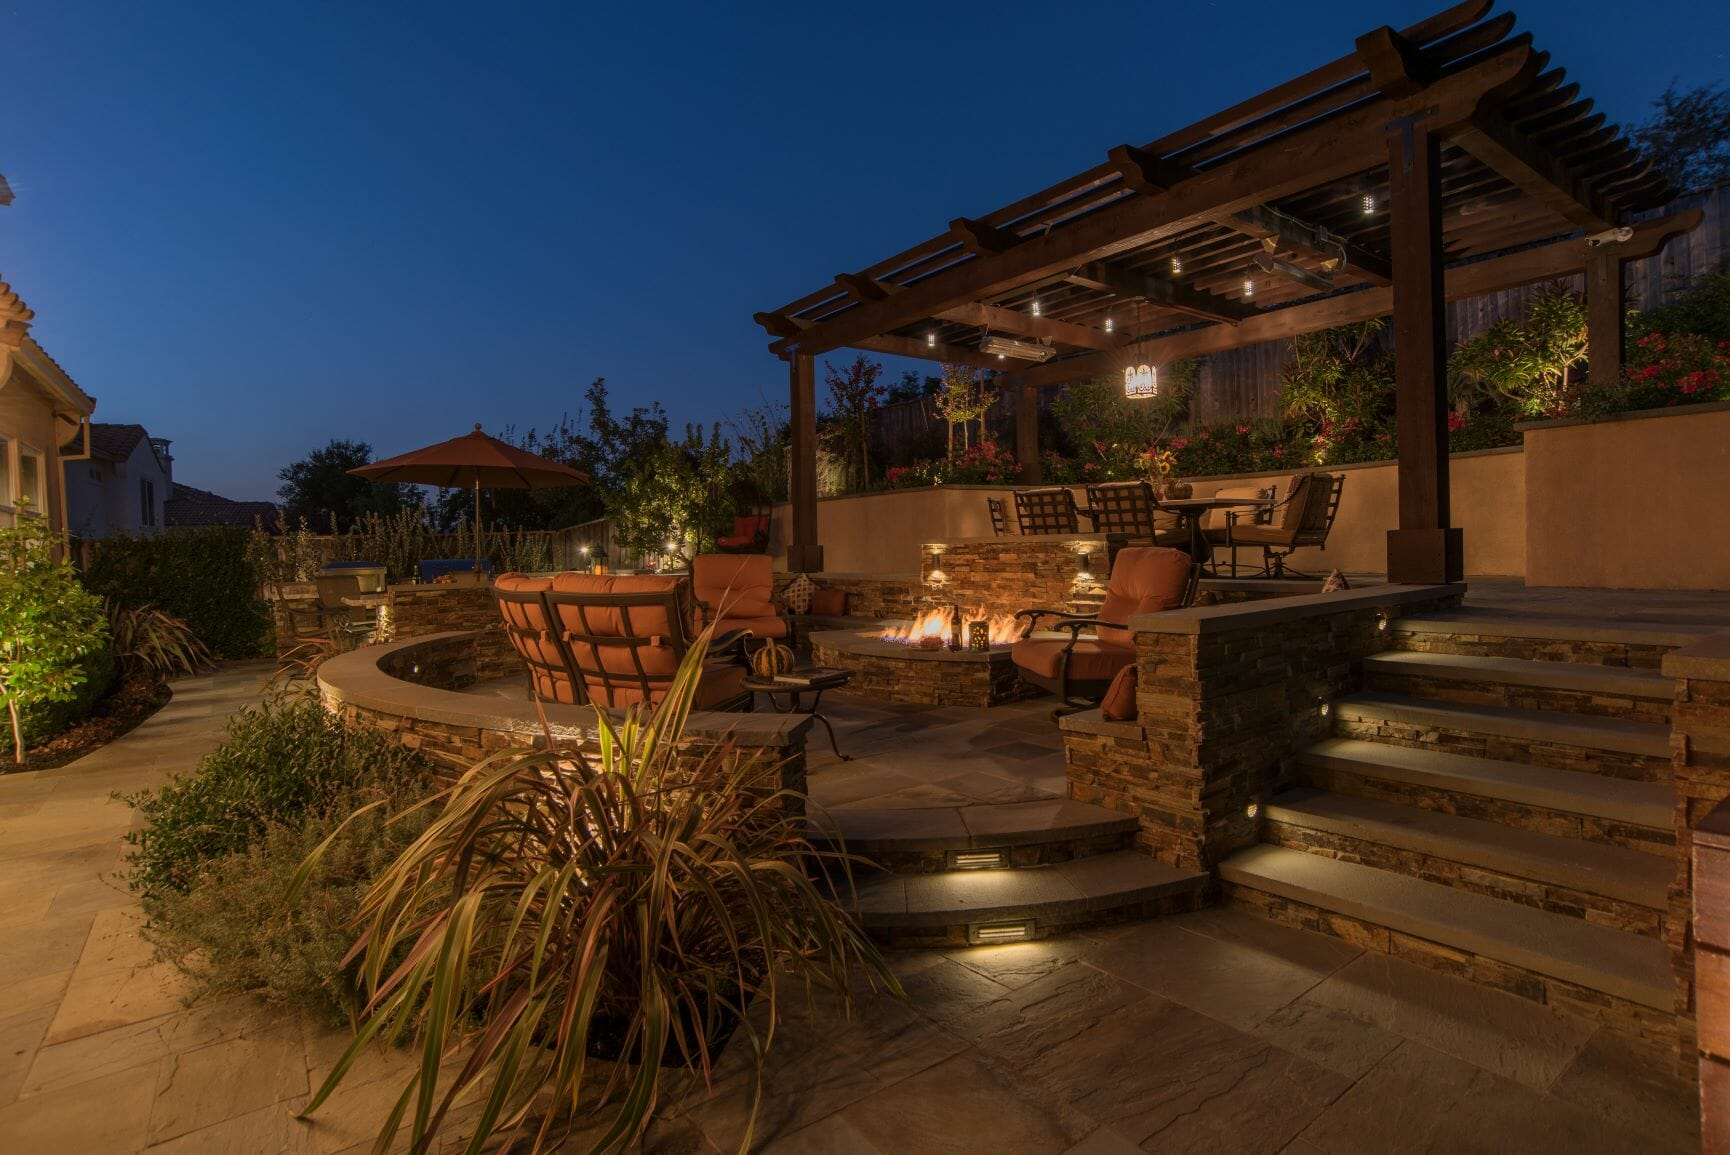 lit patio and pergola